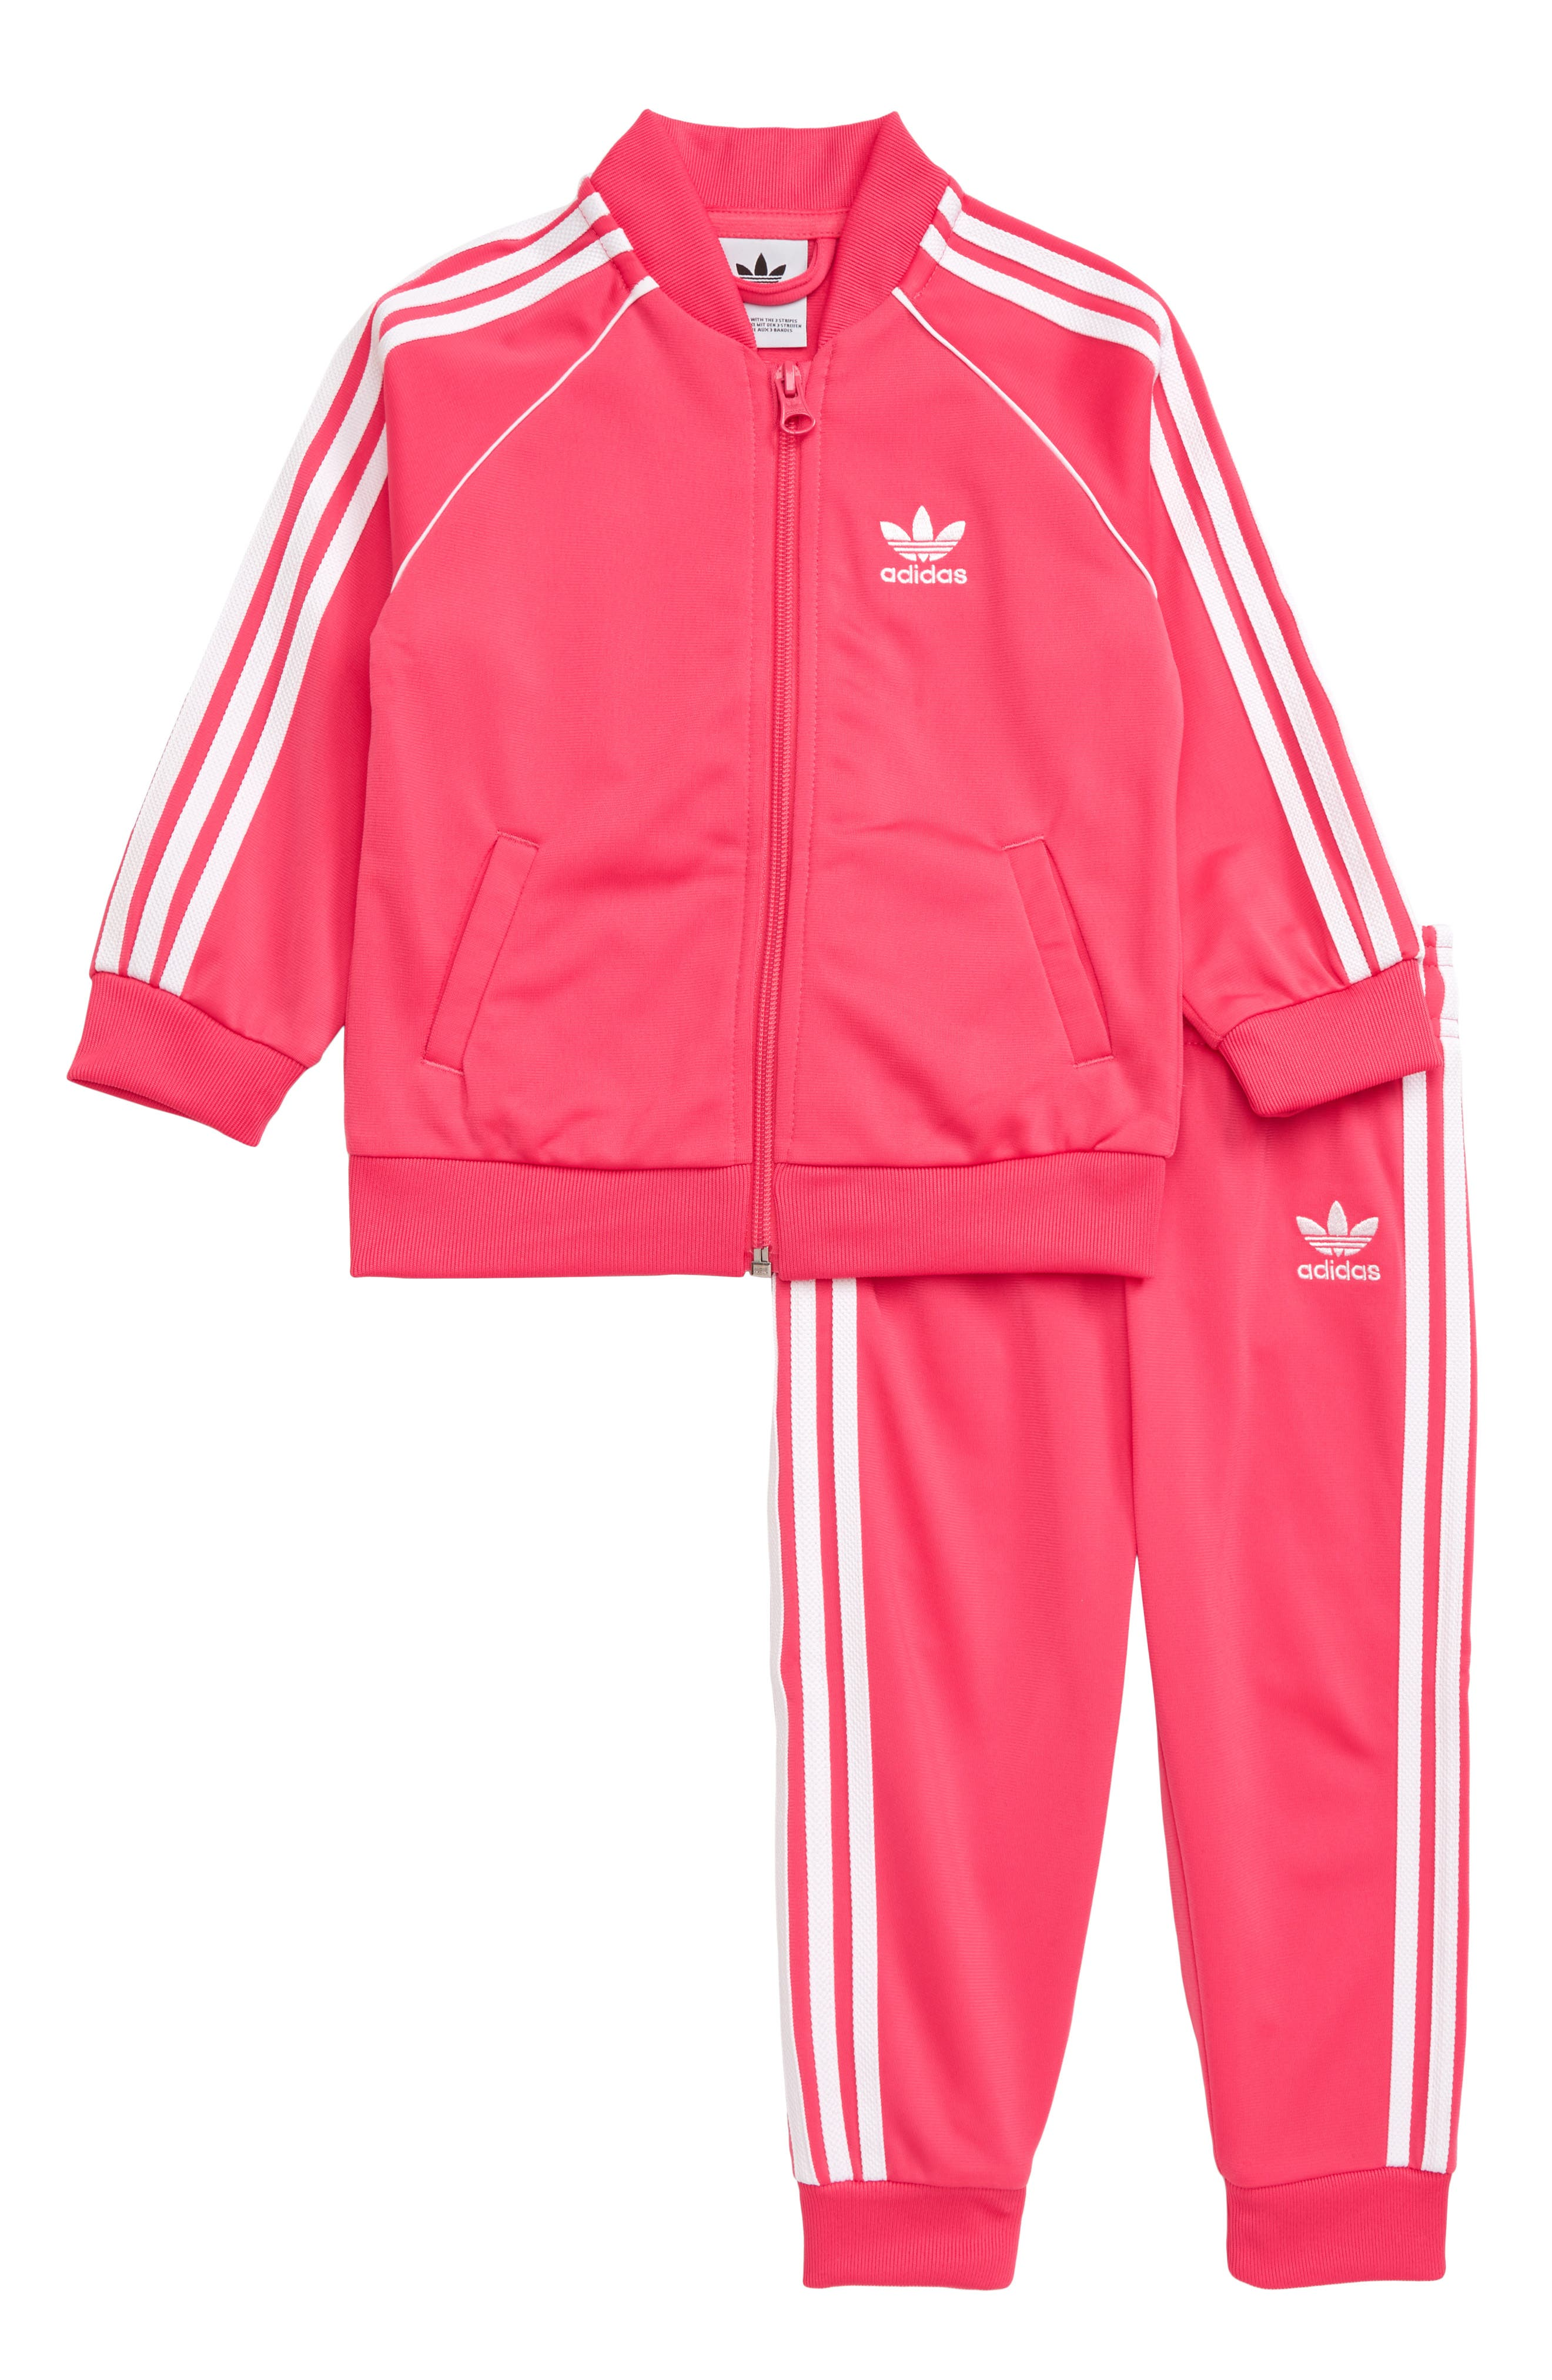 adidas tracksuit | Nordstrom